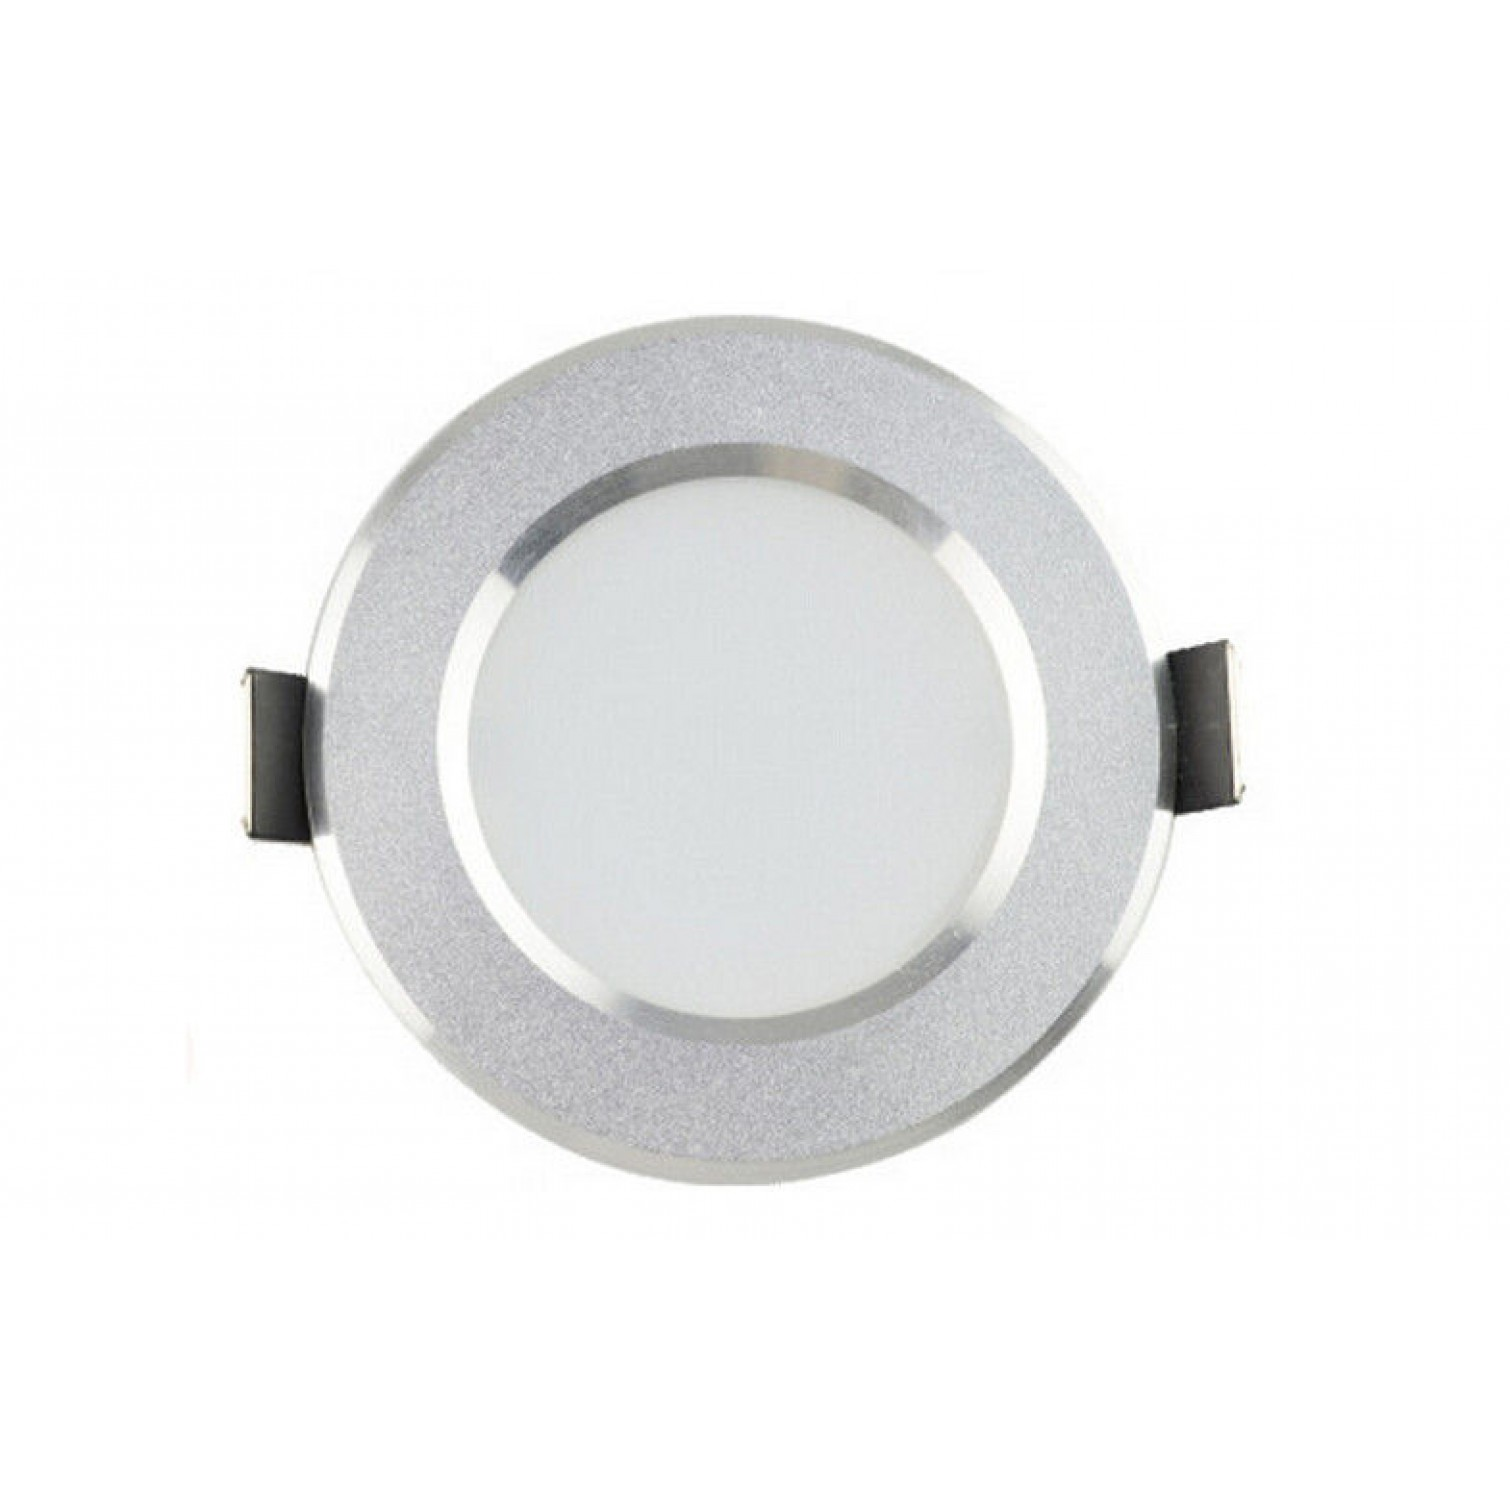 ojo-de-buey-led-3w-borde-blanco-110v-luz-blanca-dimeable-25plgs-diametro